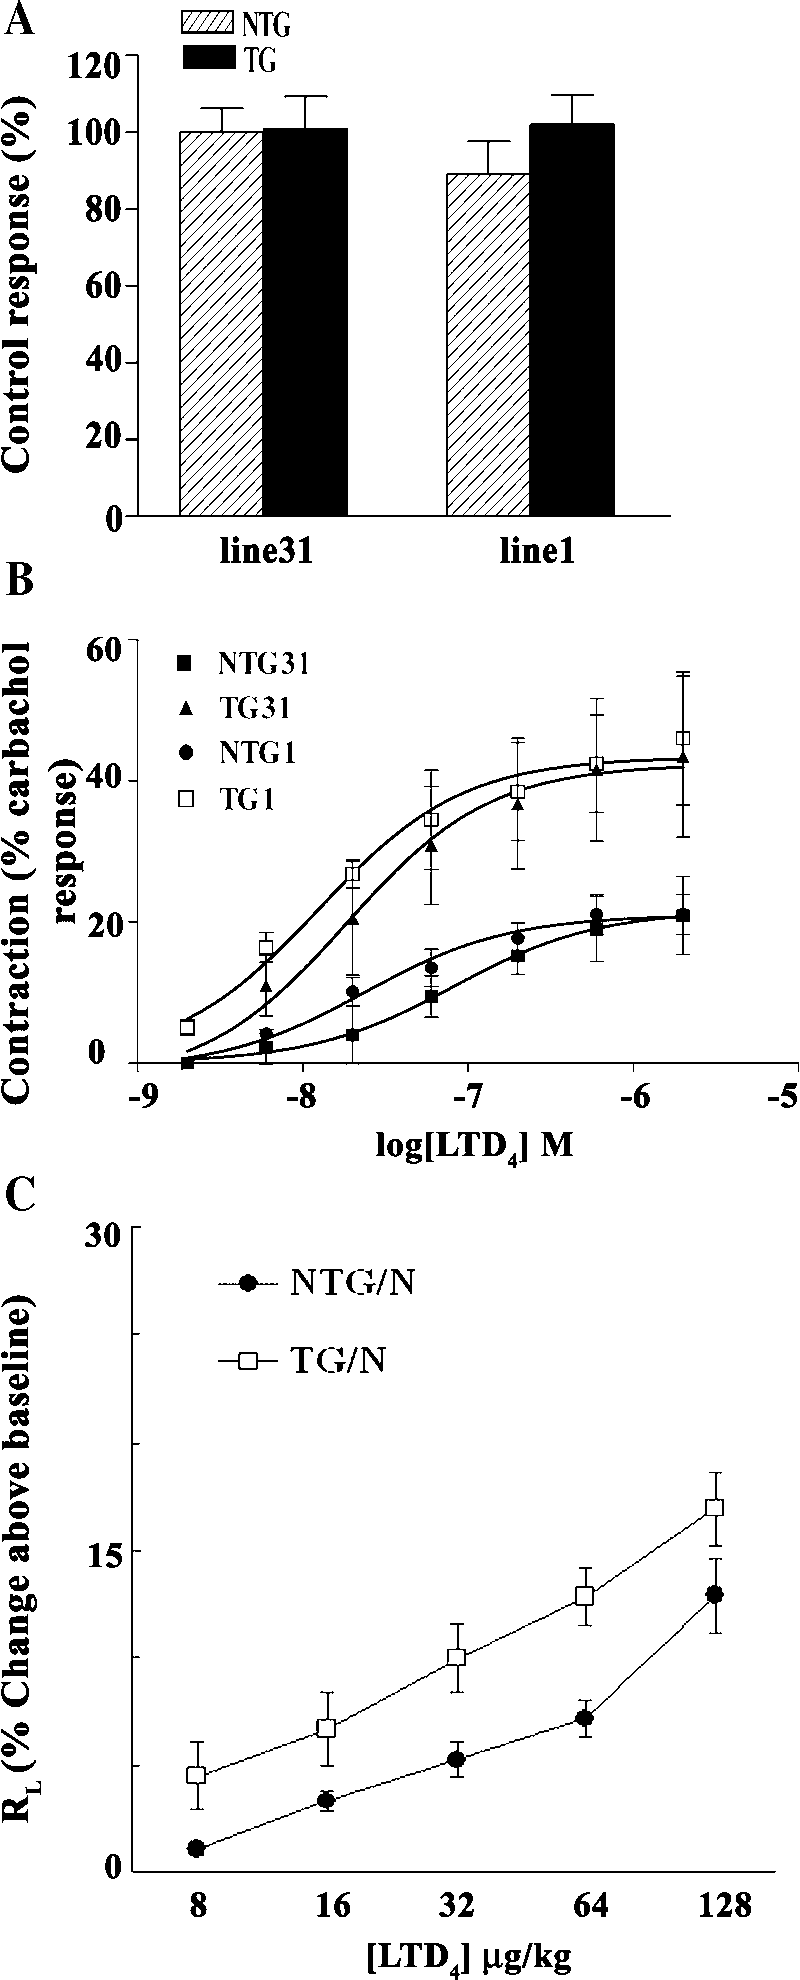 medium resolution of overexpression of hcyslt1r enhances force generation in tracheal rings upon ltd4 administration and increases airway resistance